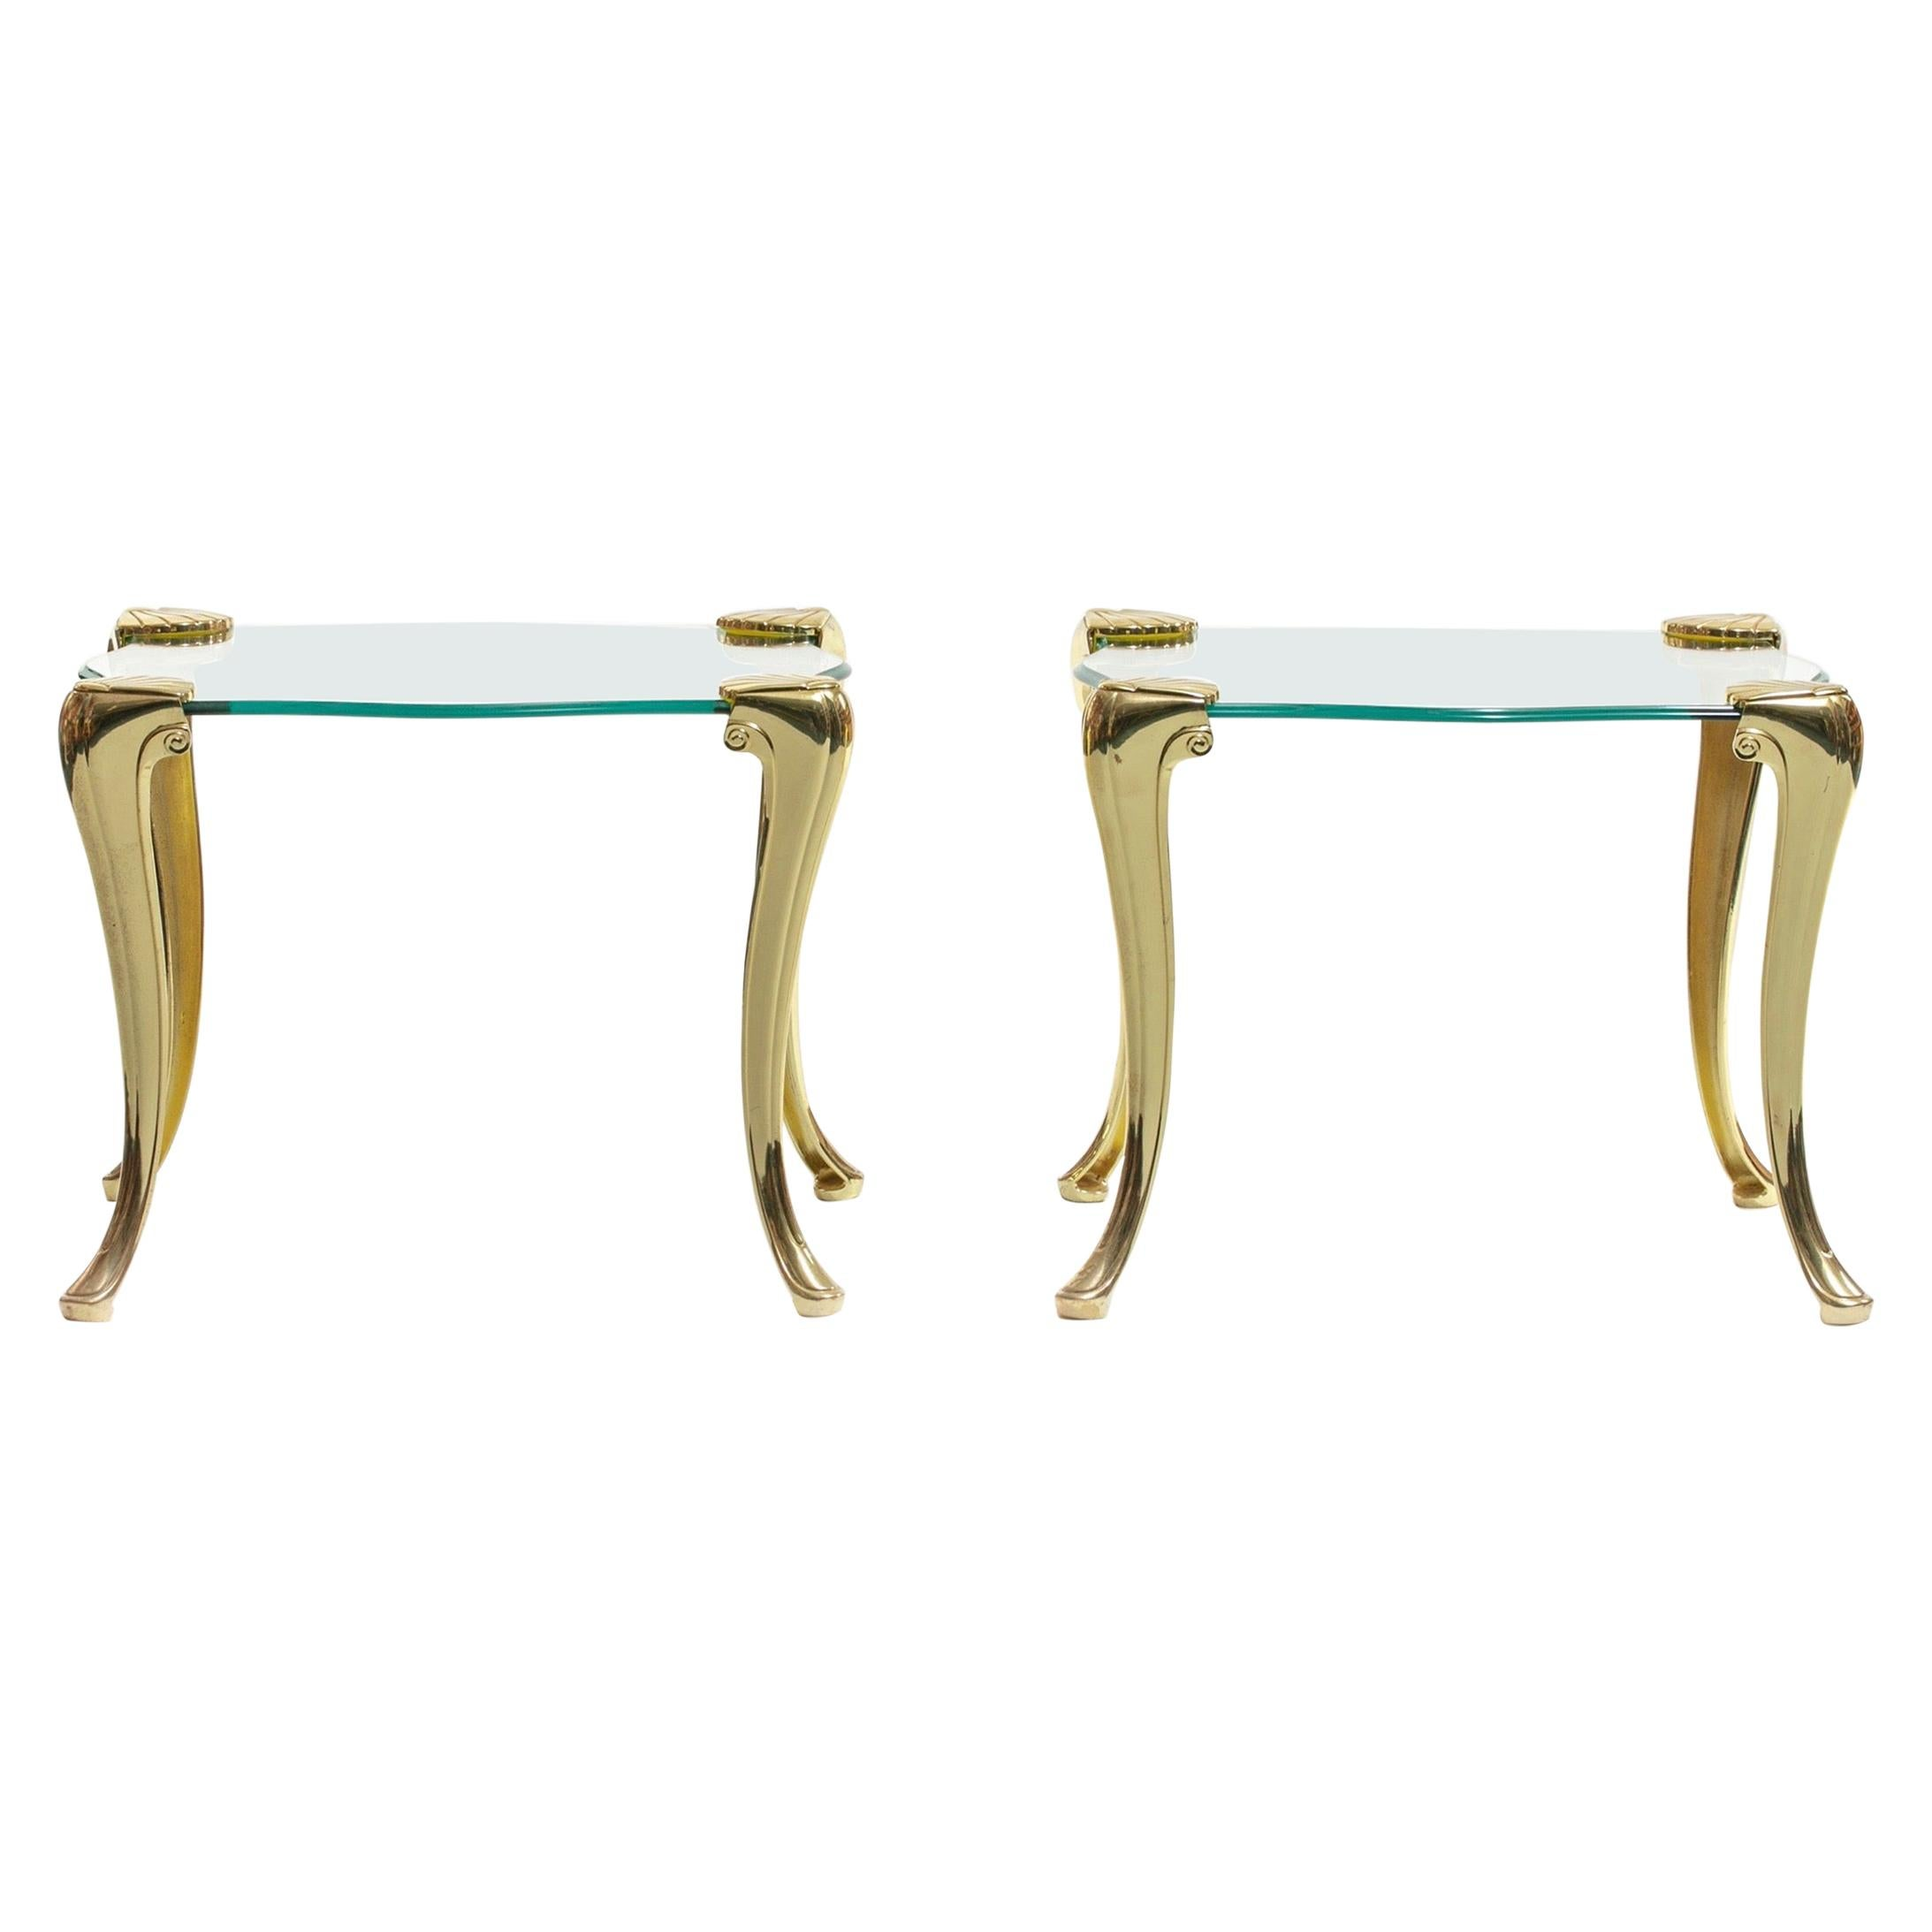 Pair of Brass and Glass Serpentine End Tables Attributed to Chapman